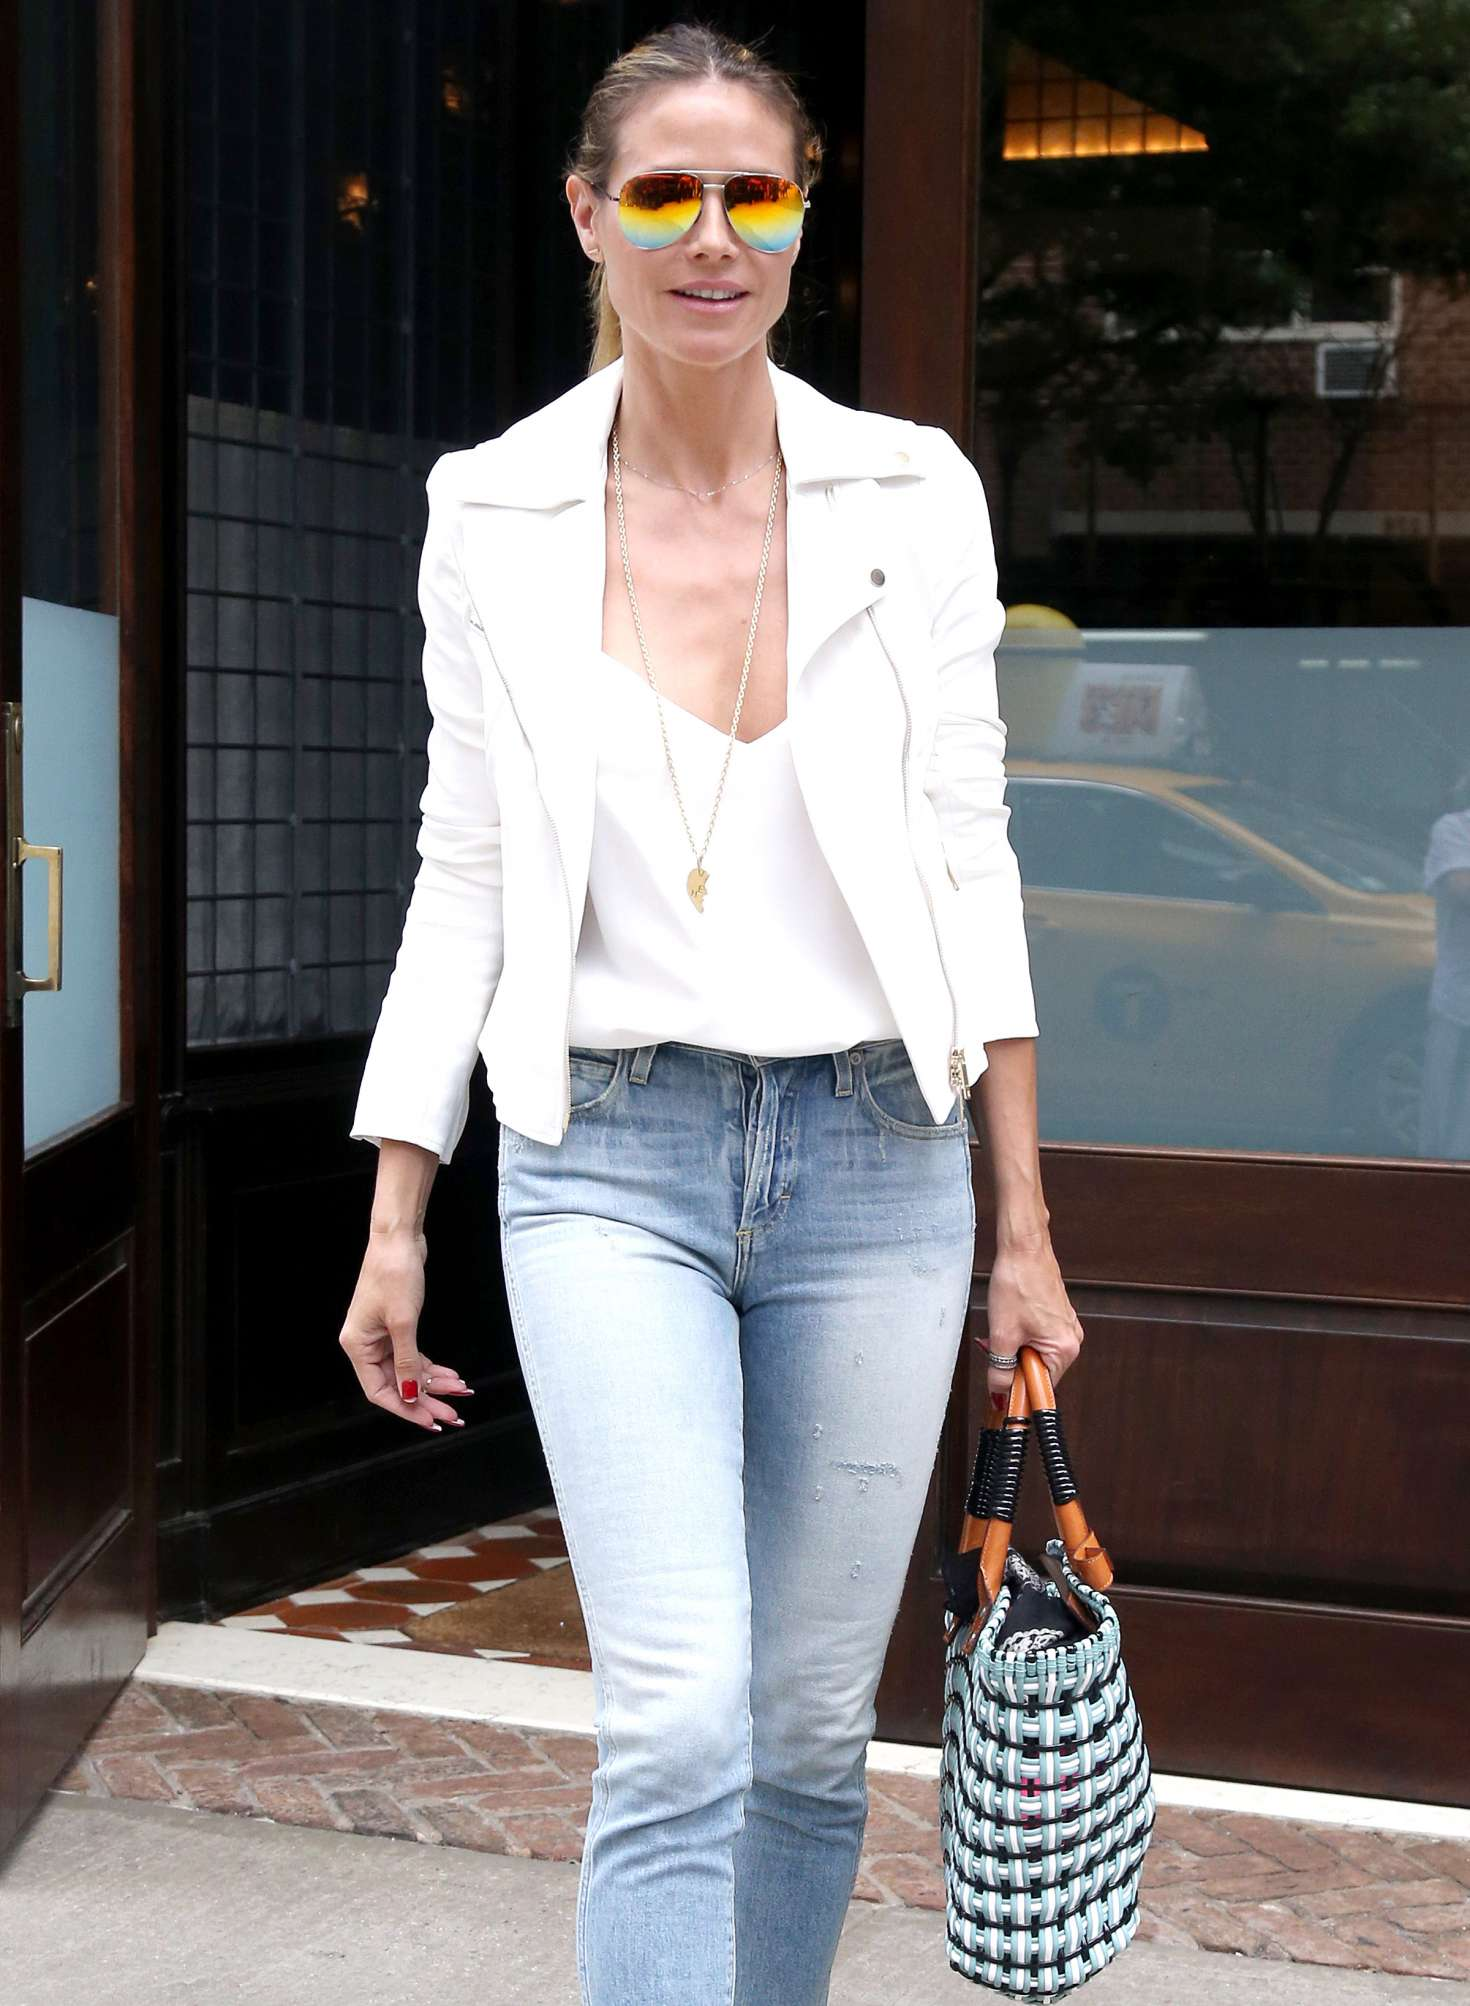 Heidi Klum 2017 : Heidi Klum Out and about in NY -12